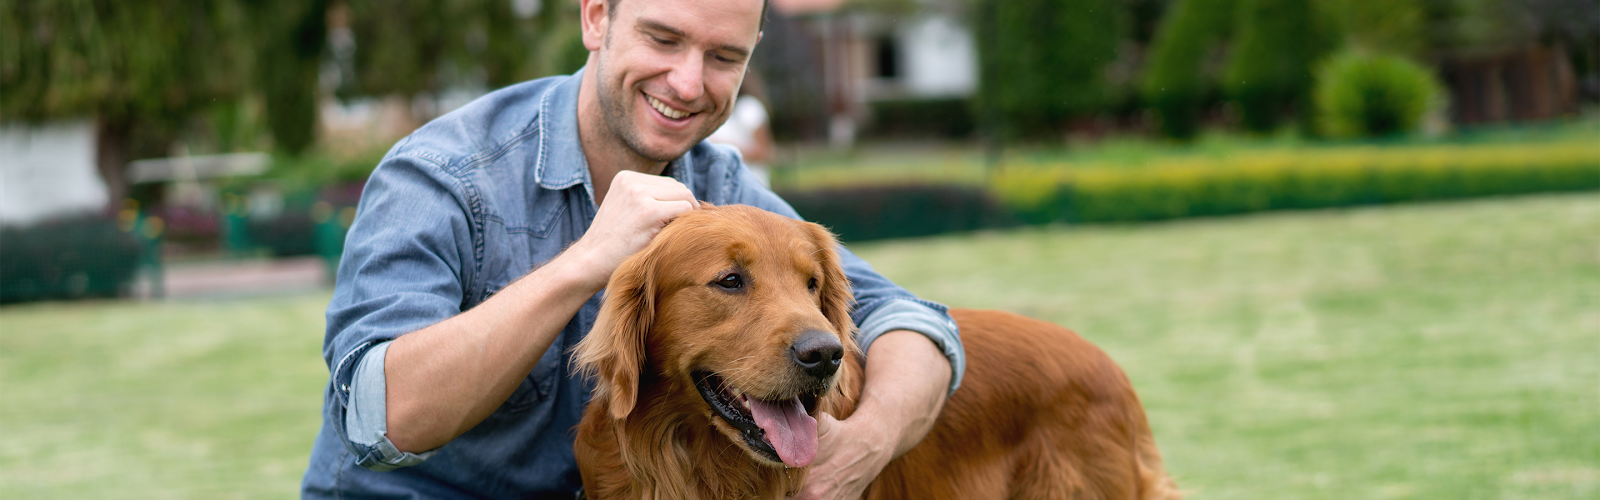 Male canine owner petting Golden Retriever in front yard